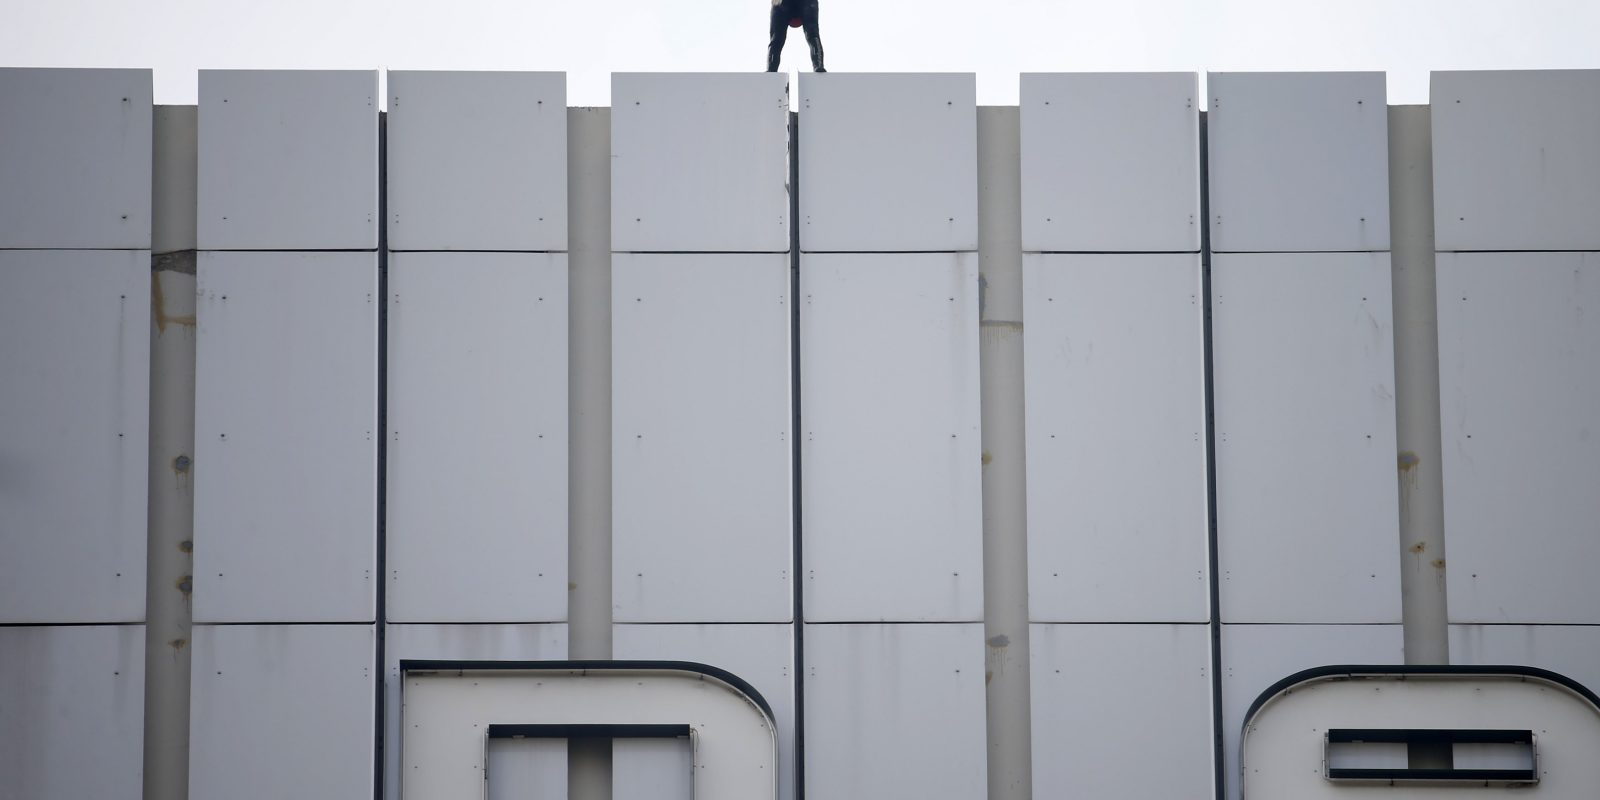 """French climber Alain Robert, also known as """"Spiderman"""", reacts after scaling the 152 metre Ariane Tower at La Defense financial and business district outside Paris. Imagen Por: French climber Alain Robert, also known as"""